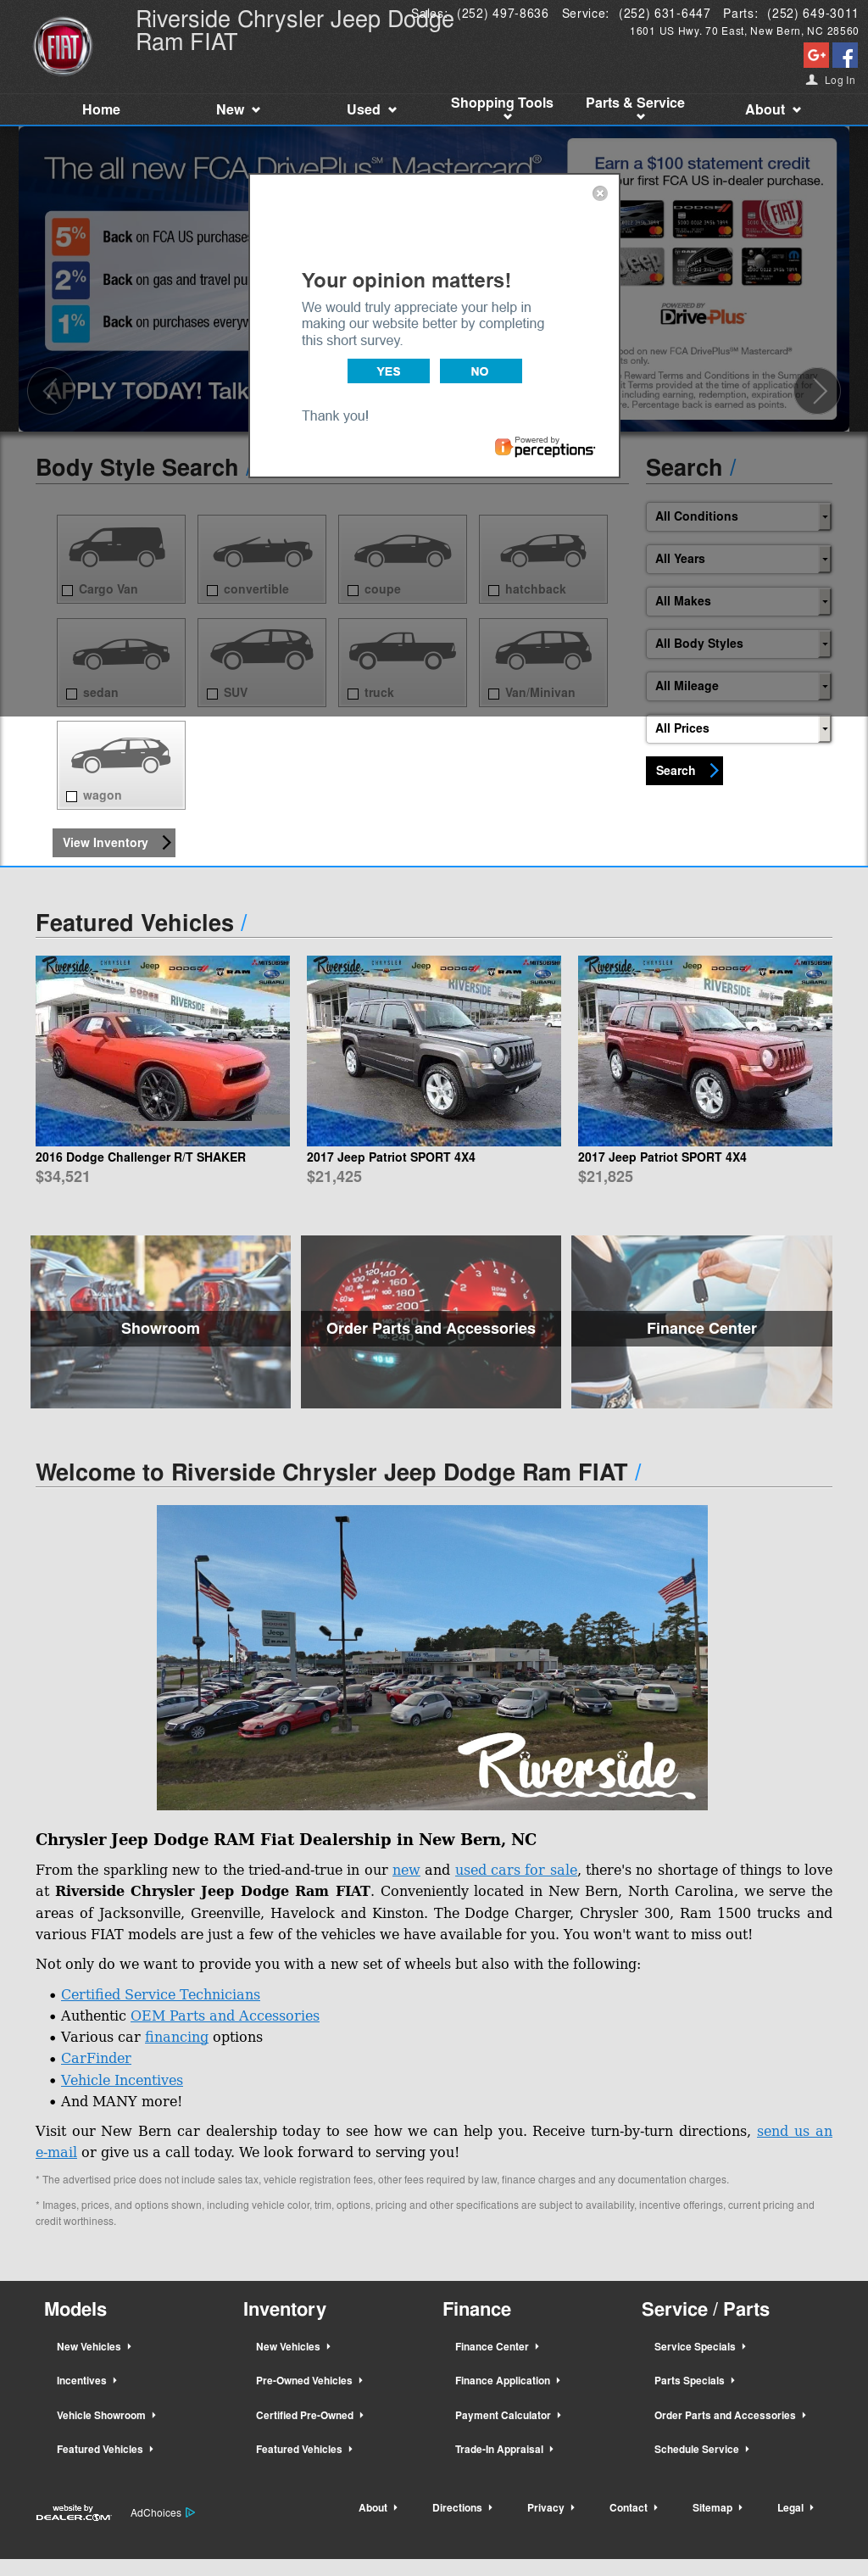 Riverside Chrysler Jeep Dodge Website History